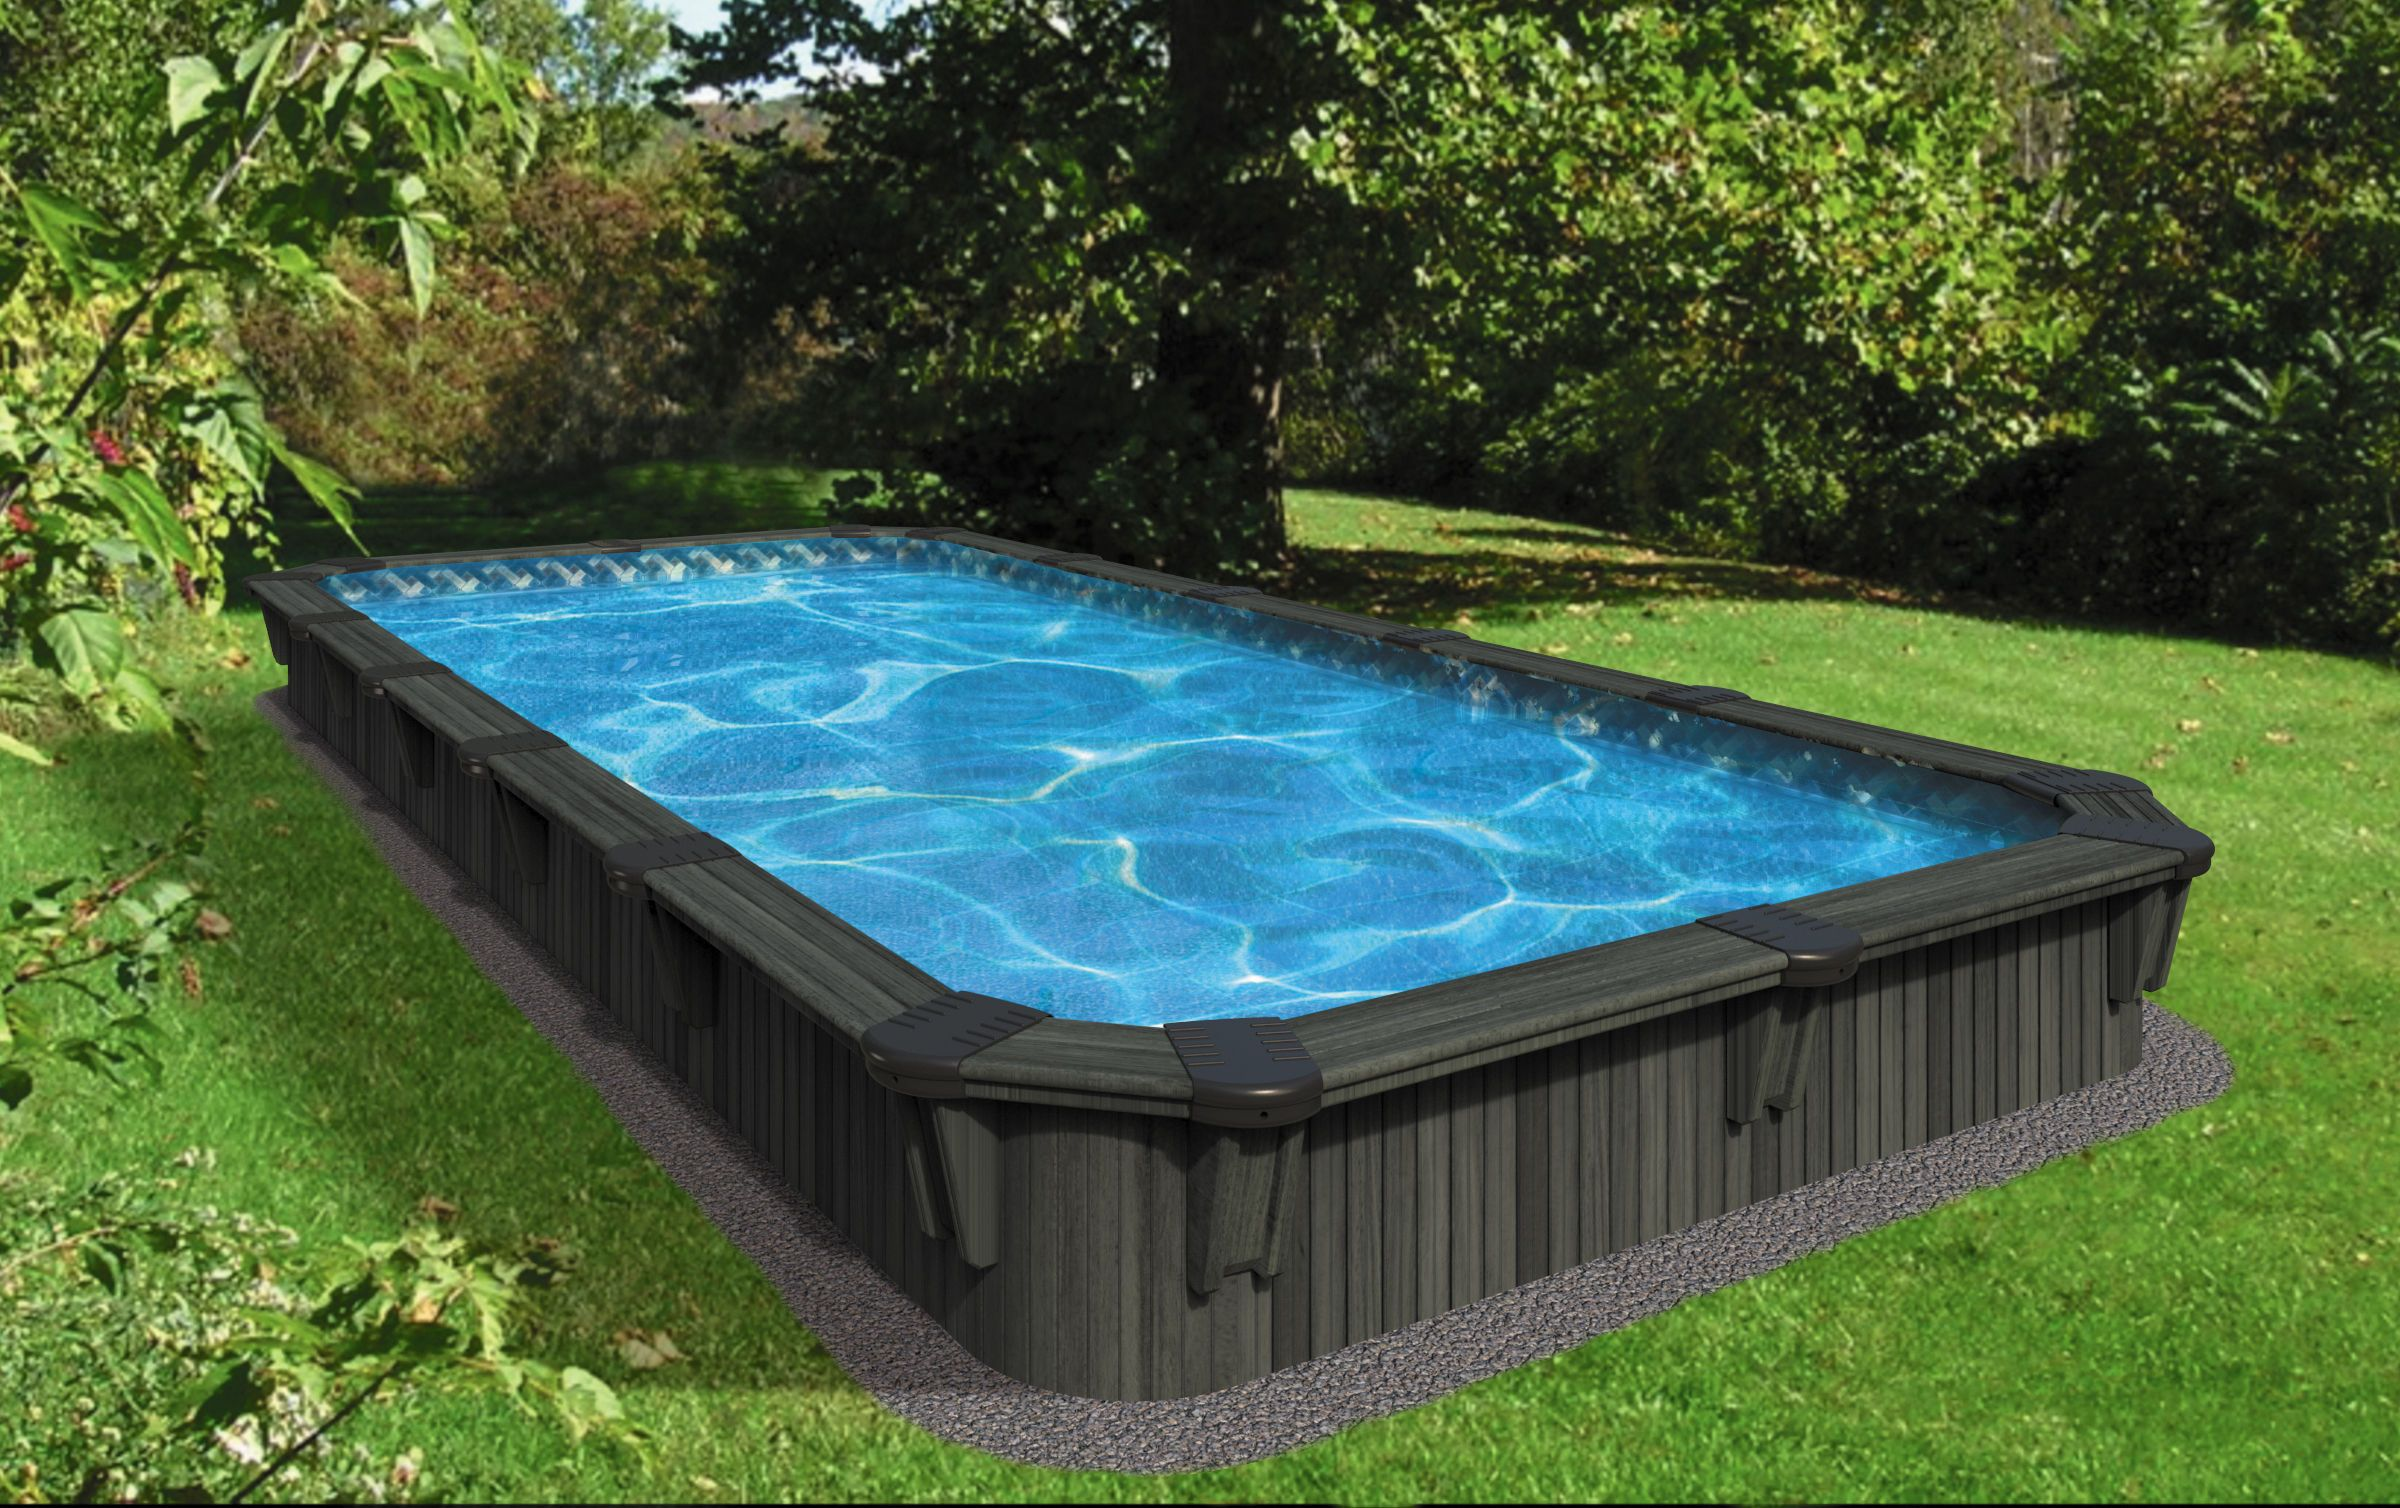 This new rectangular pool sleek whit welldefined lines